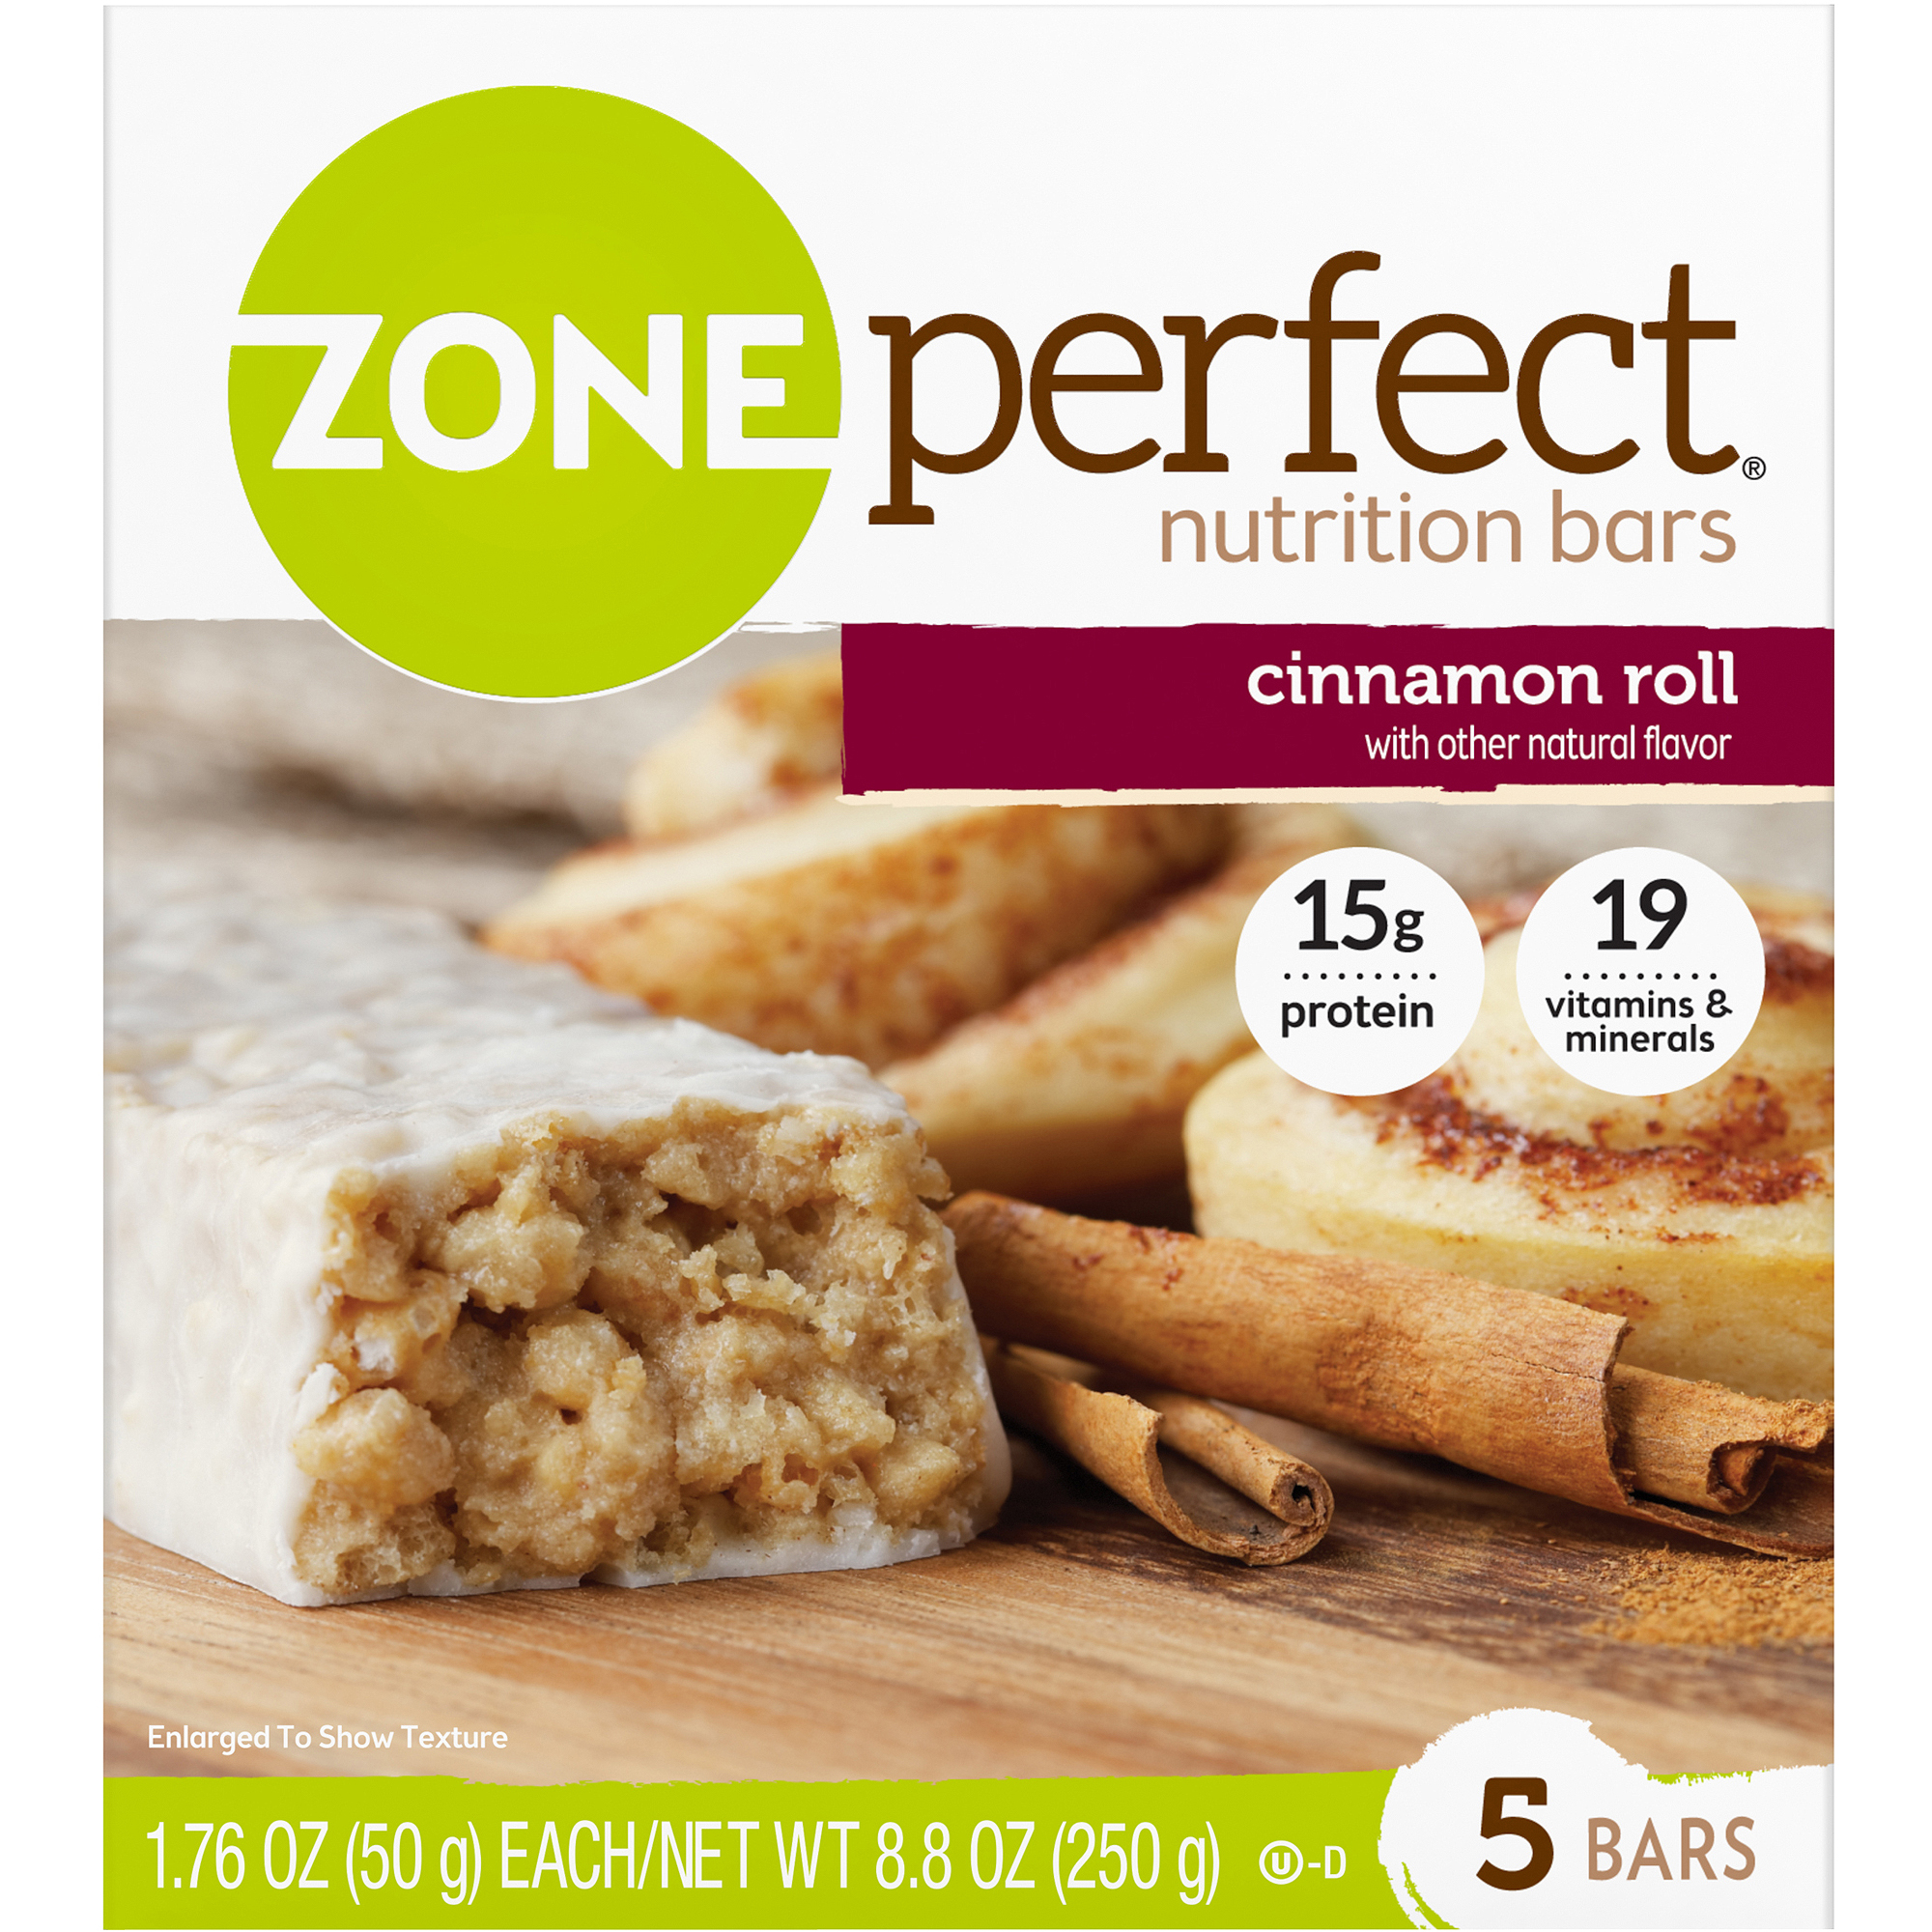 ZonePerfect Nutrition Bars, Cinnamon Roll, 5-pack